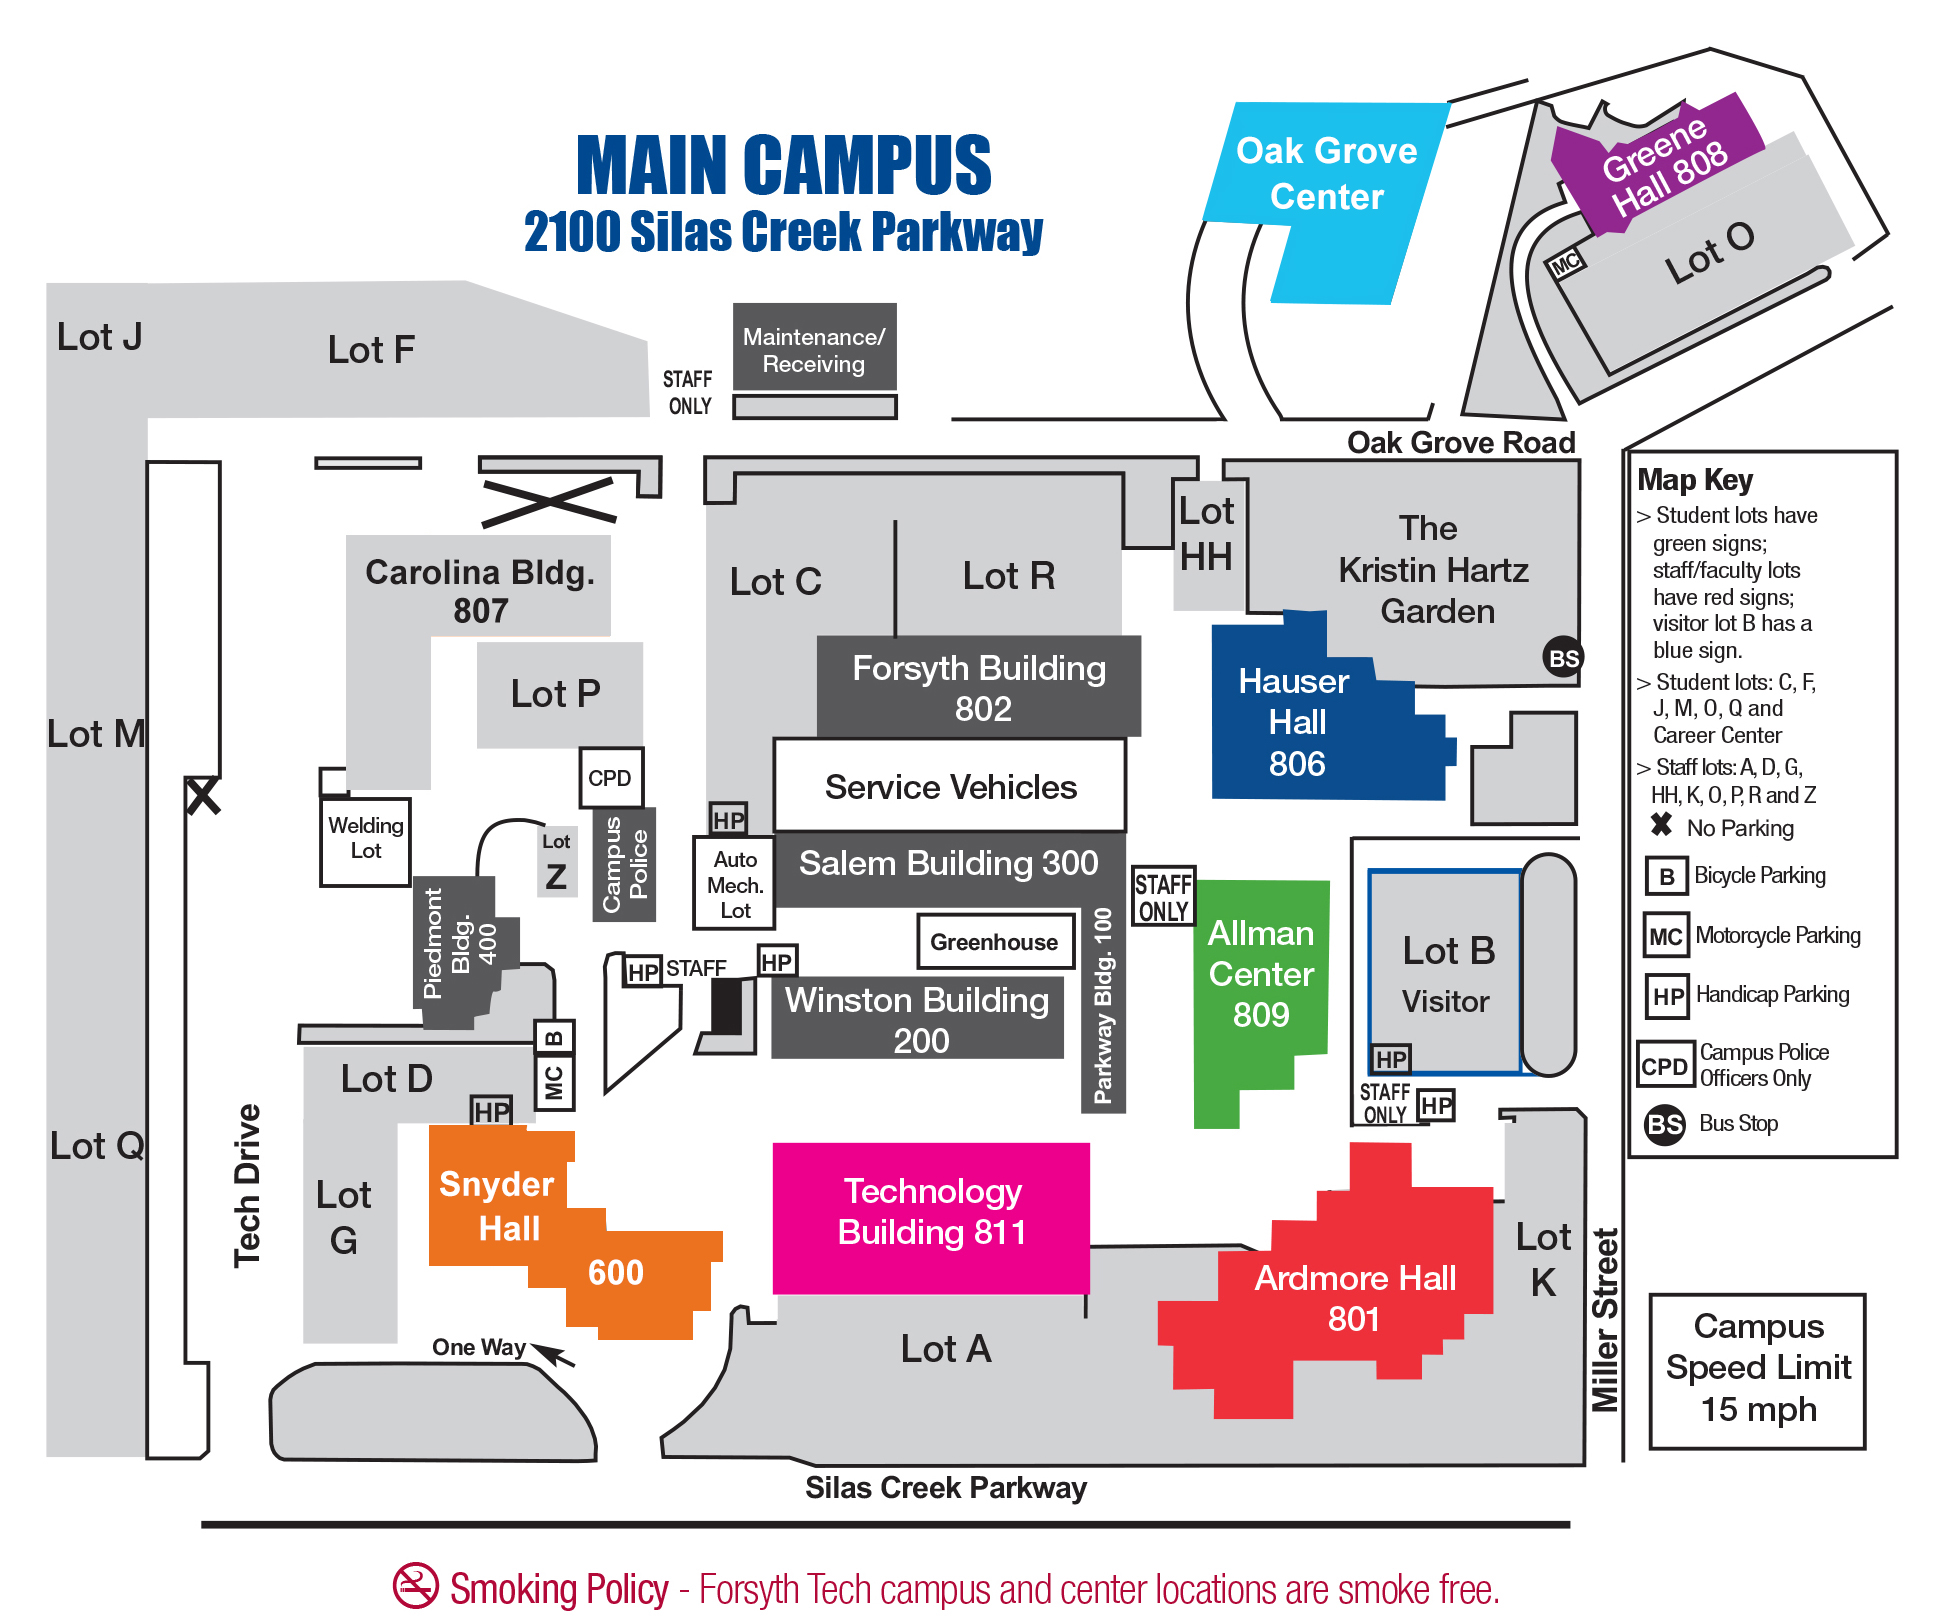 campus map and buildings images